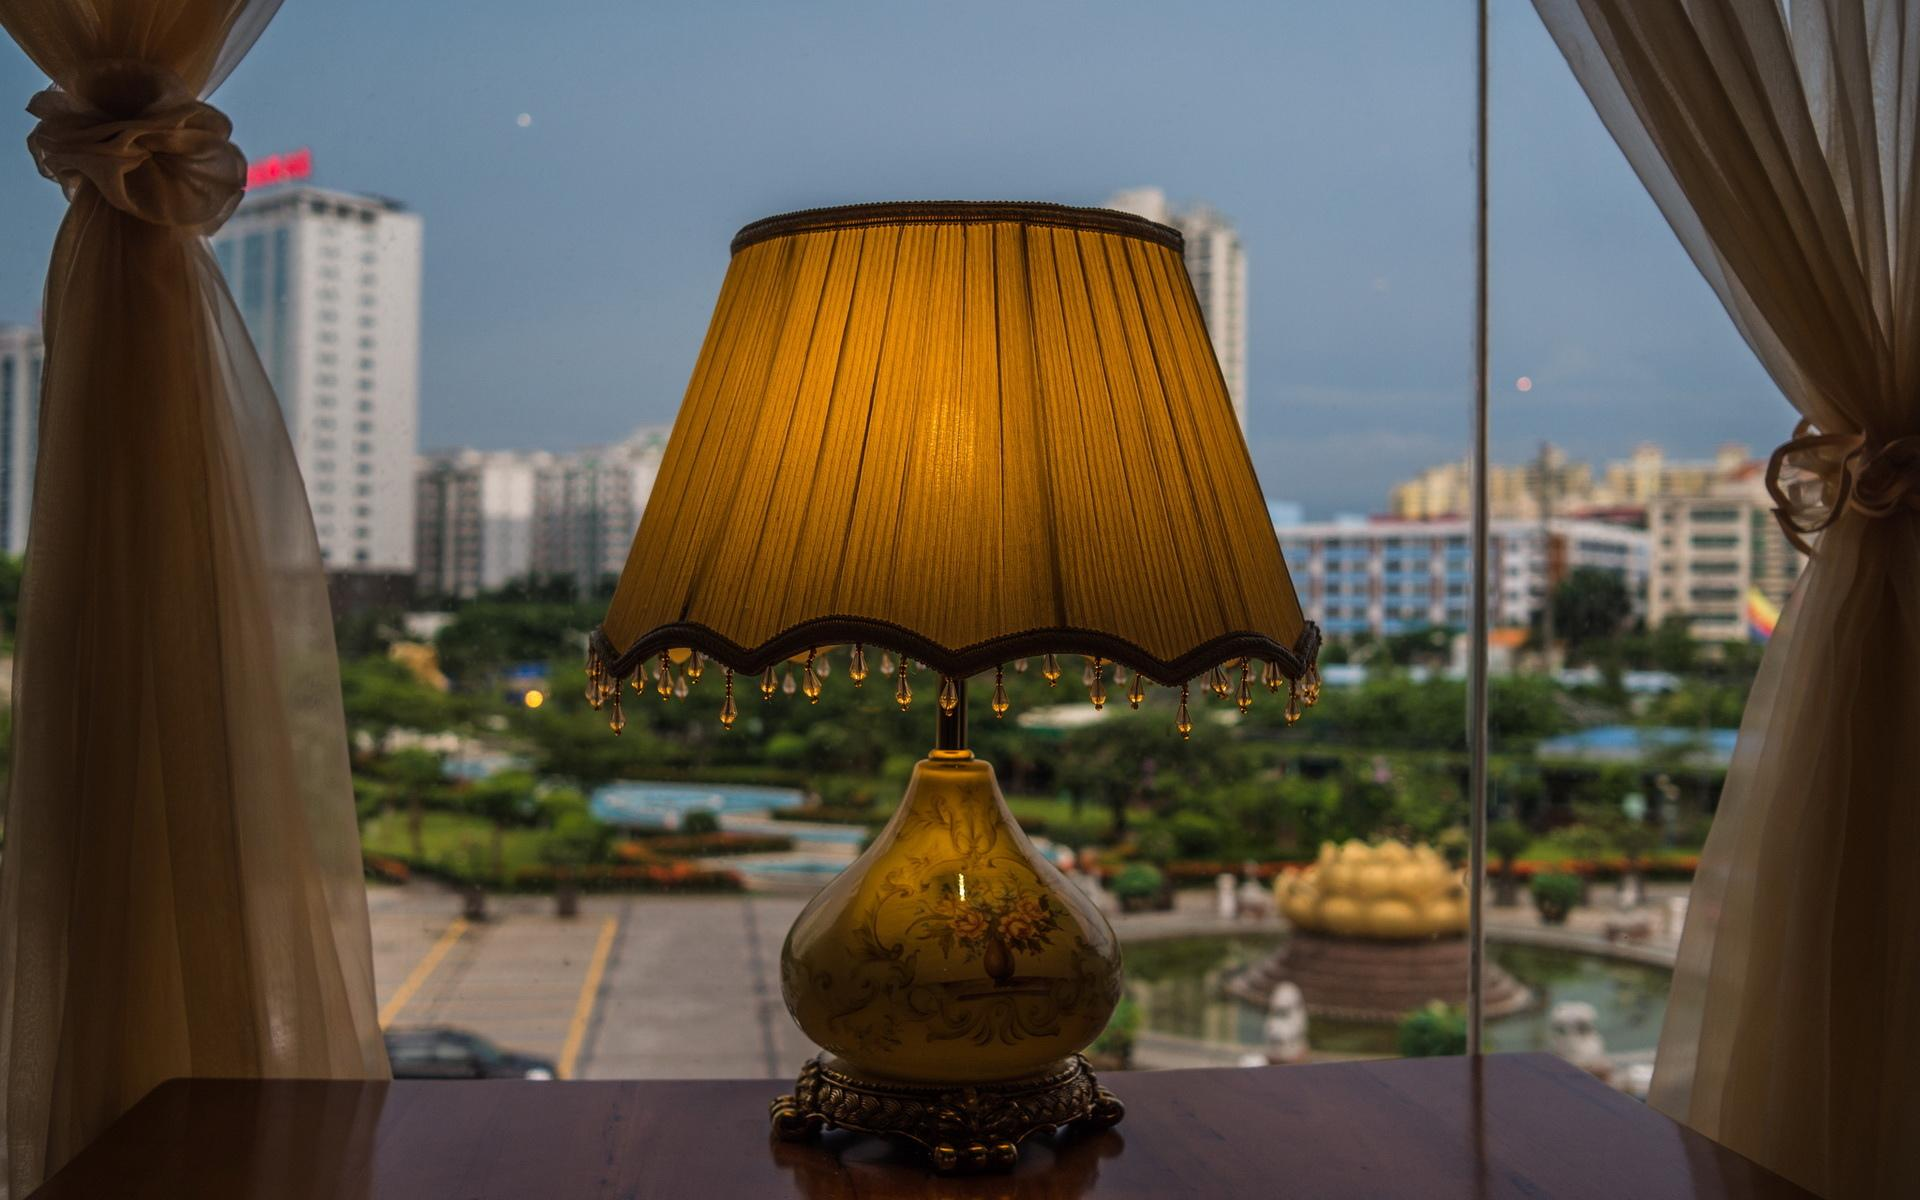 Lamp wallpapers HD quality